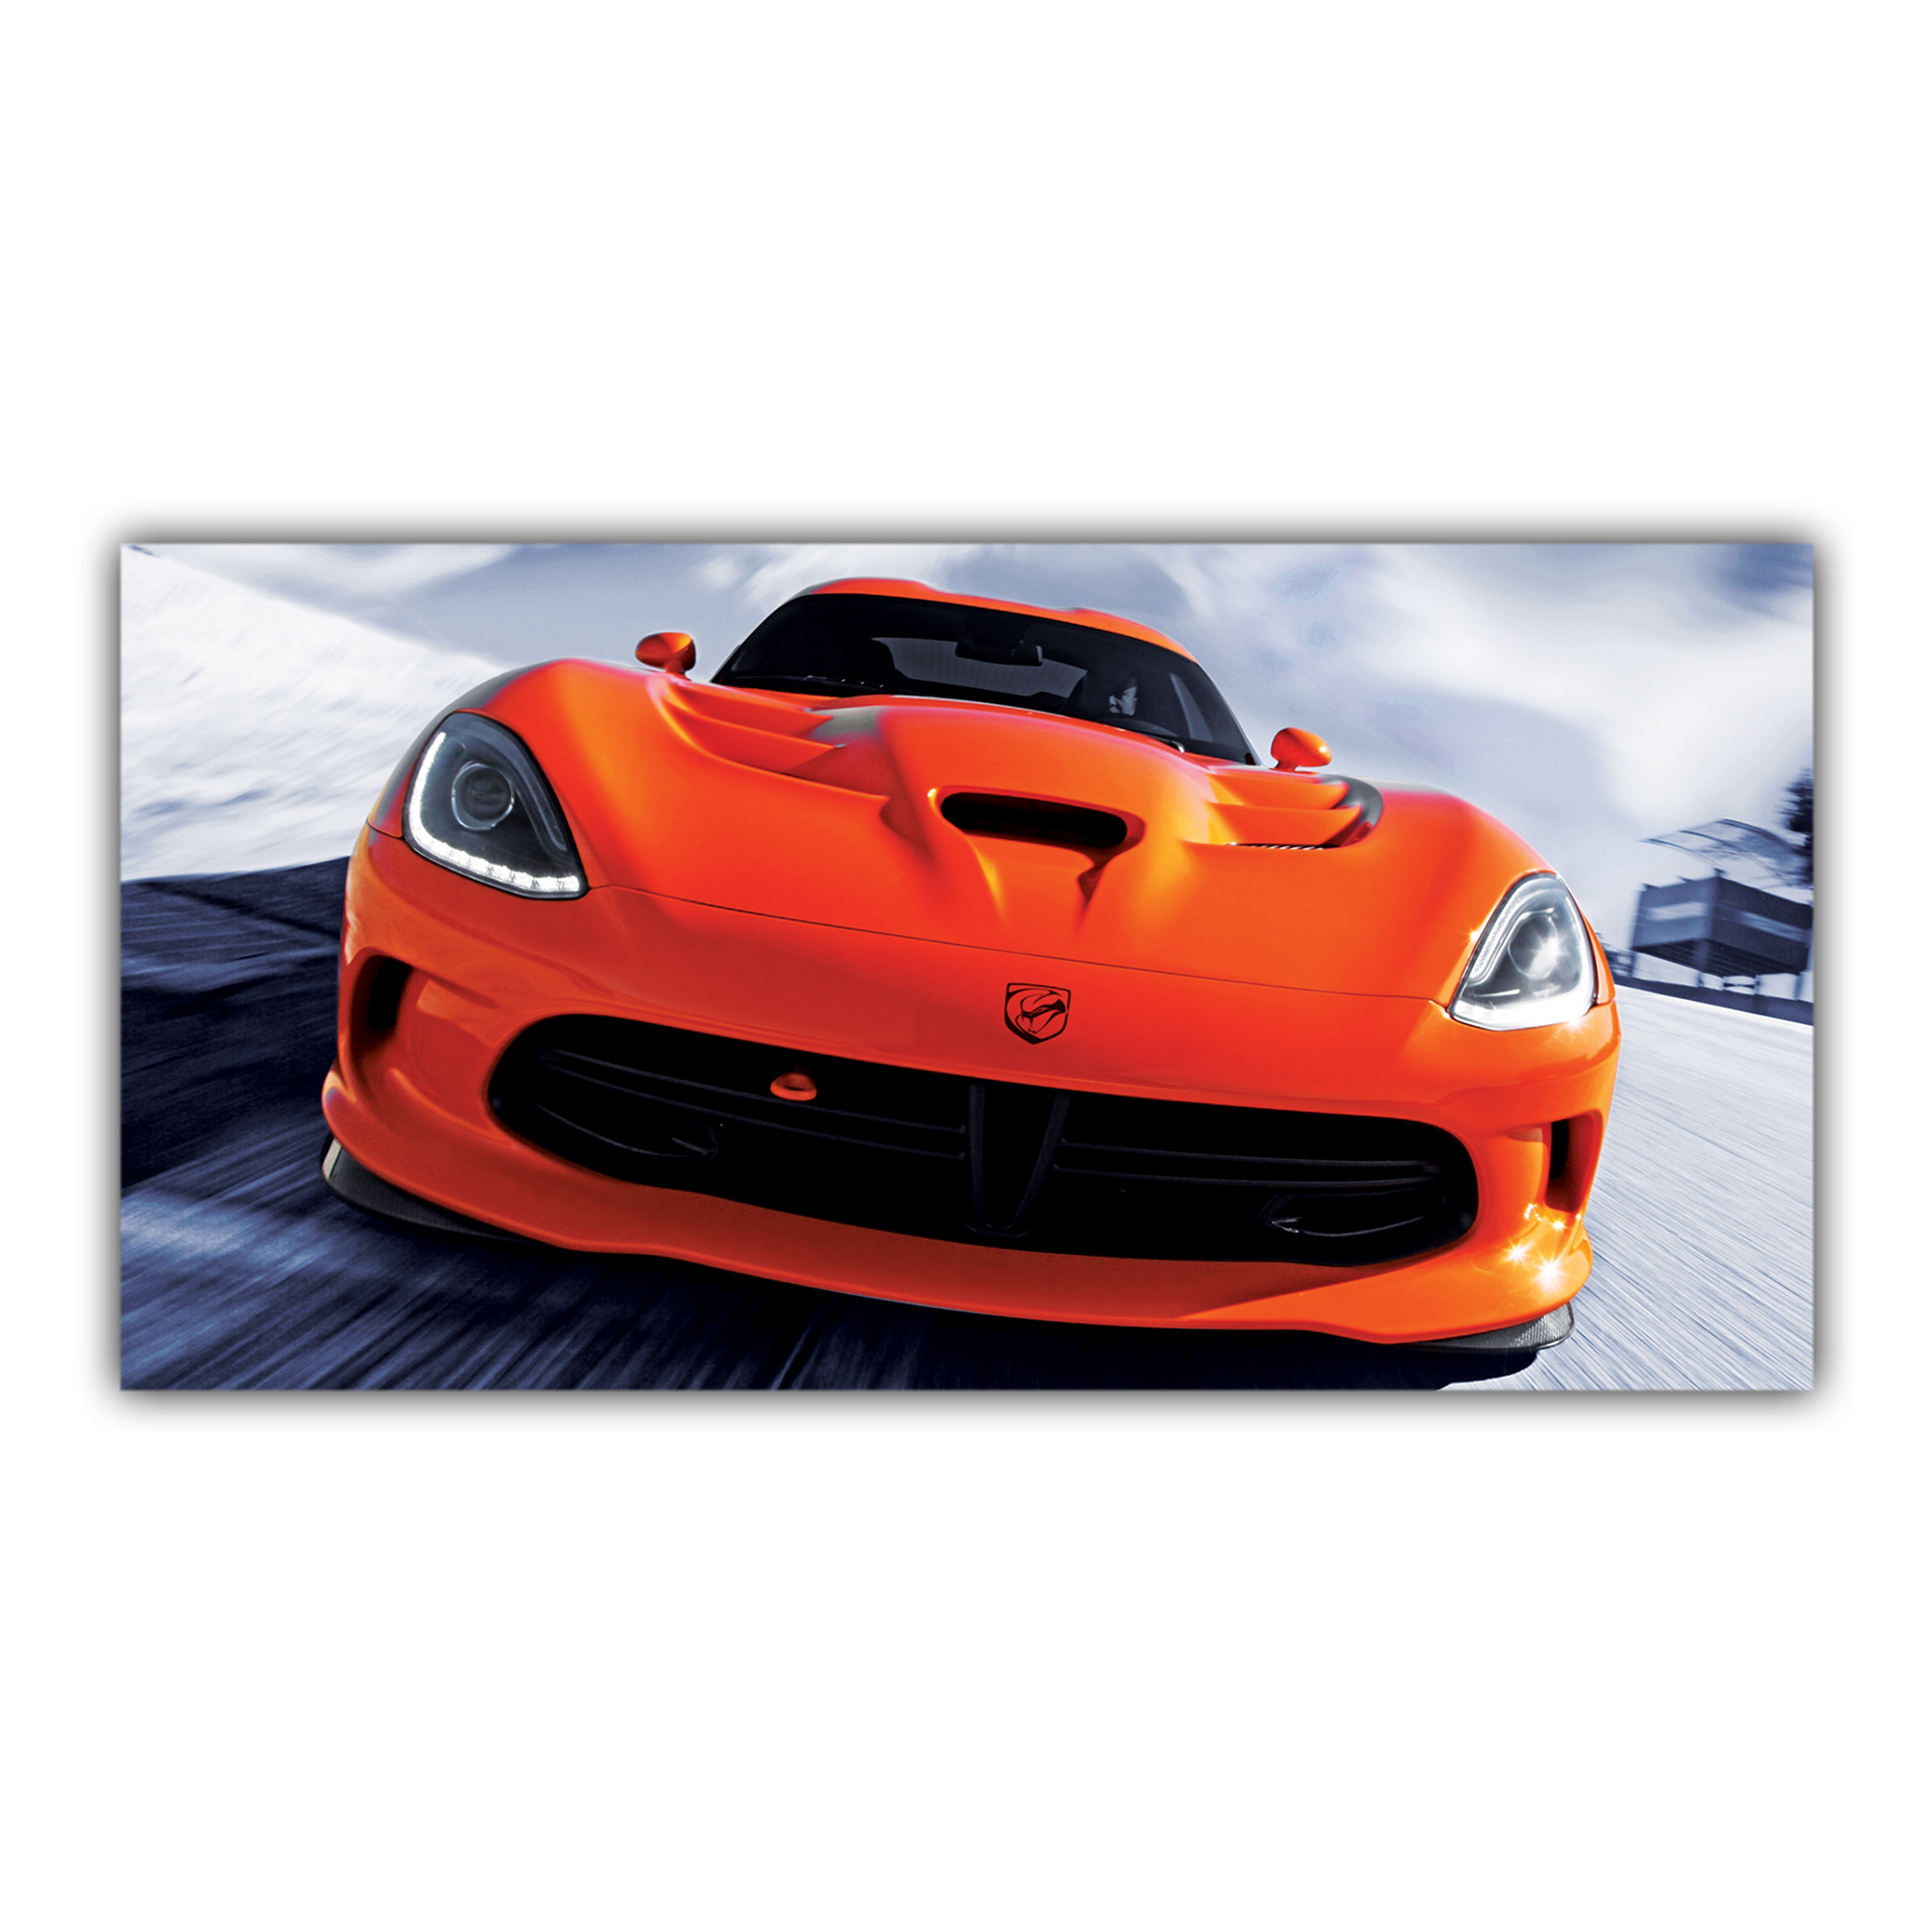 Viper SRT Dodge Orange Sport Voiture Américaine